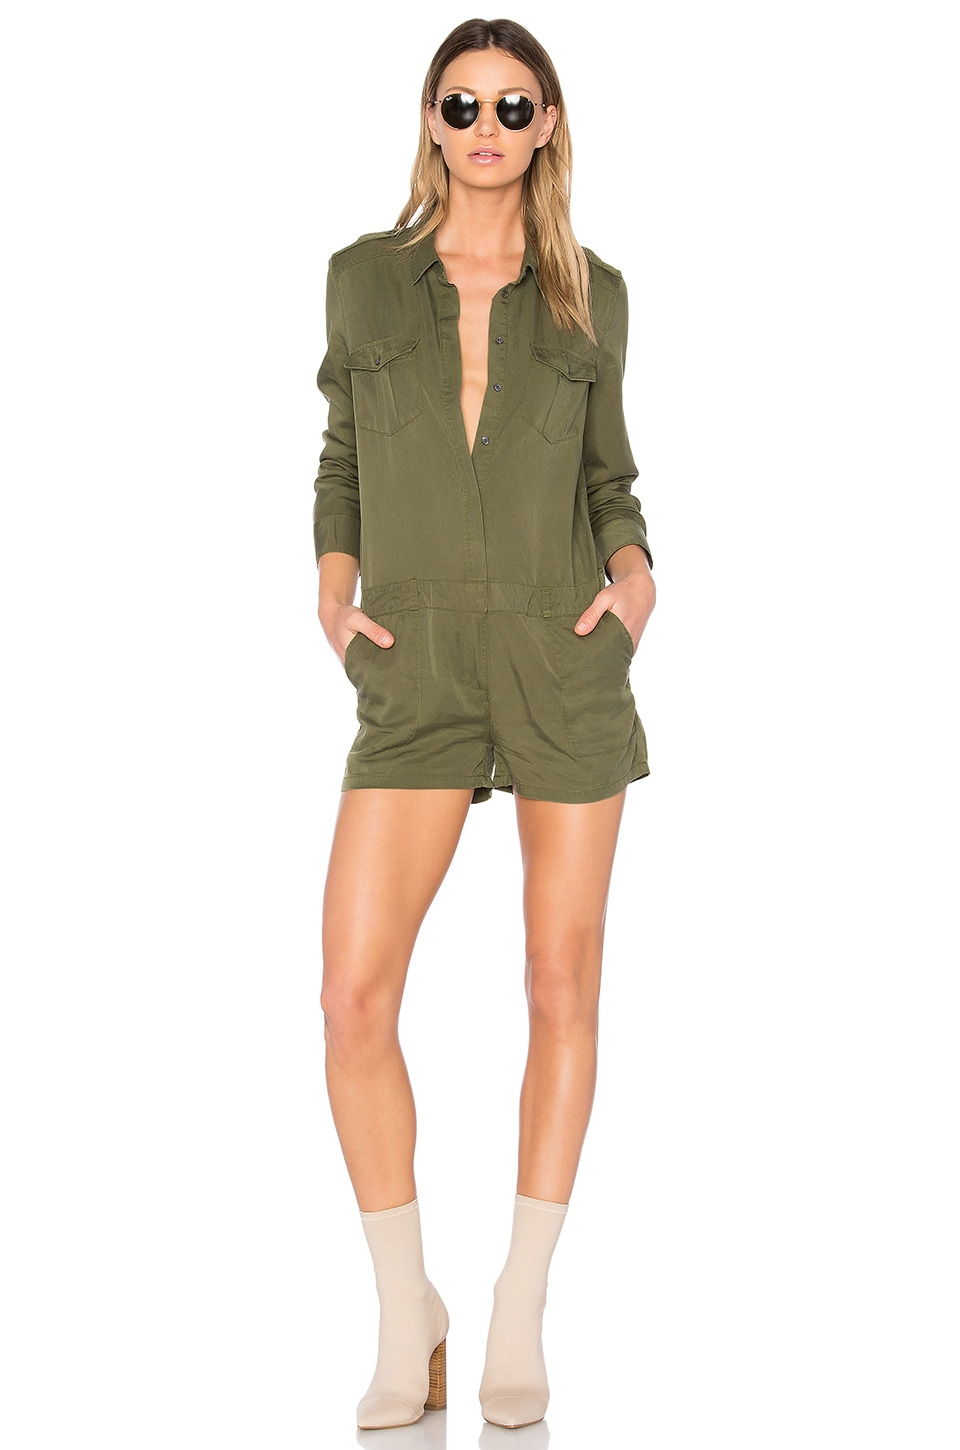 Central Park West Santa Cruz Romper in Army Green